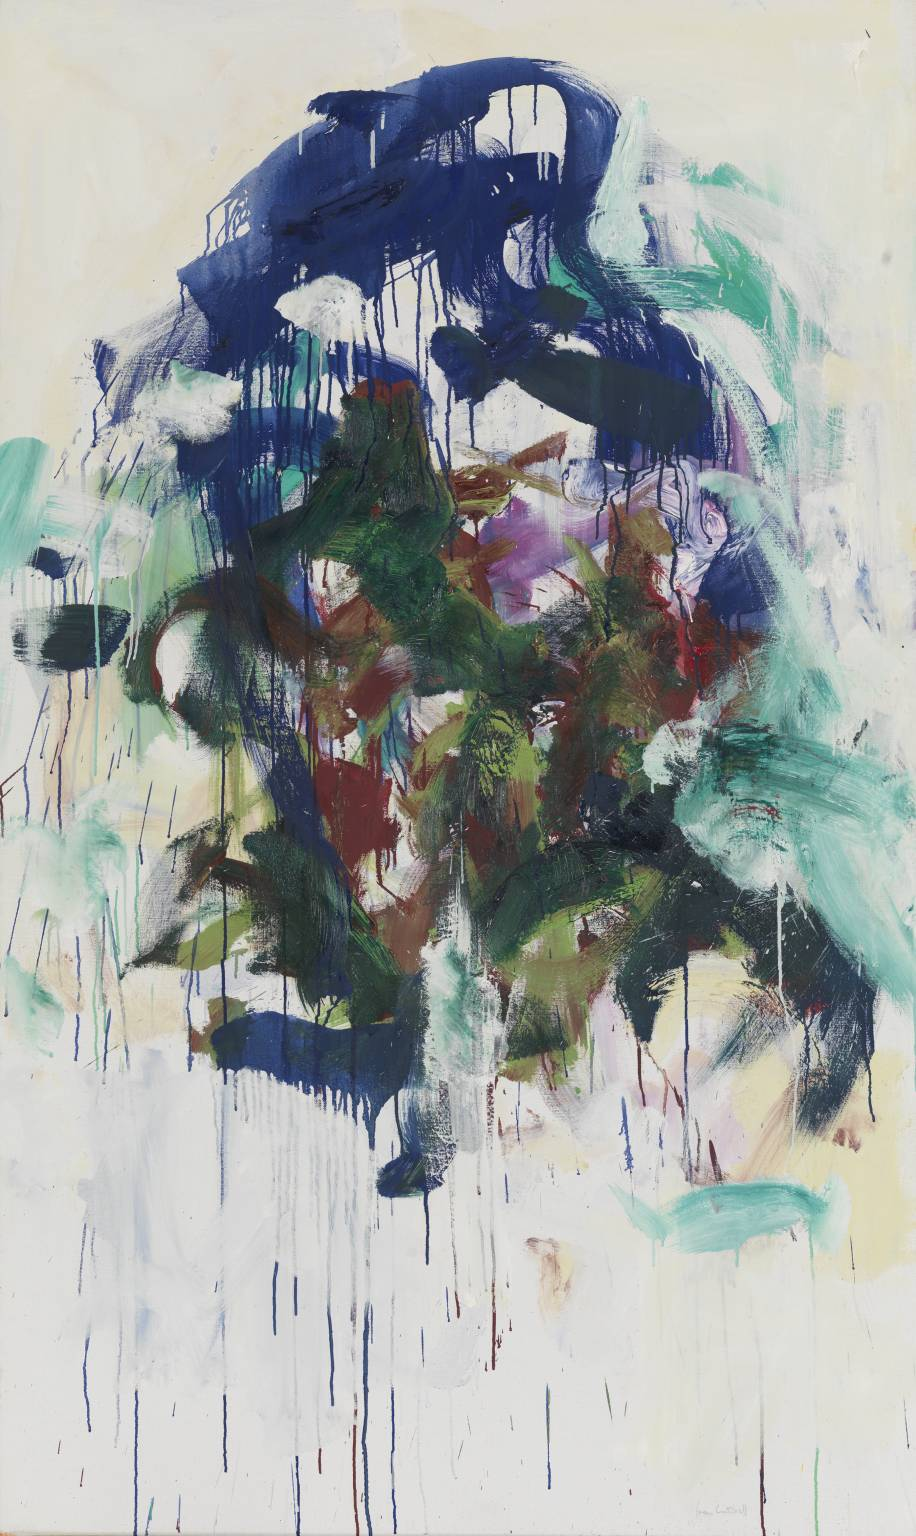 Chord II, 1986 by Joan Mitchell